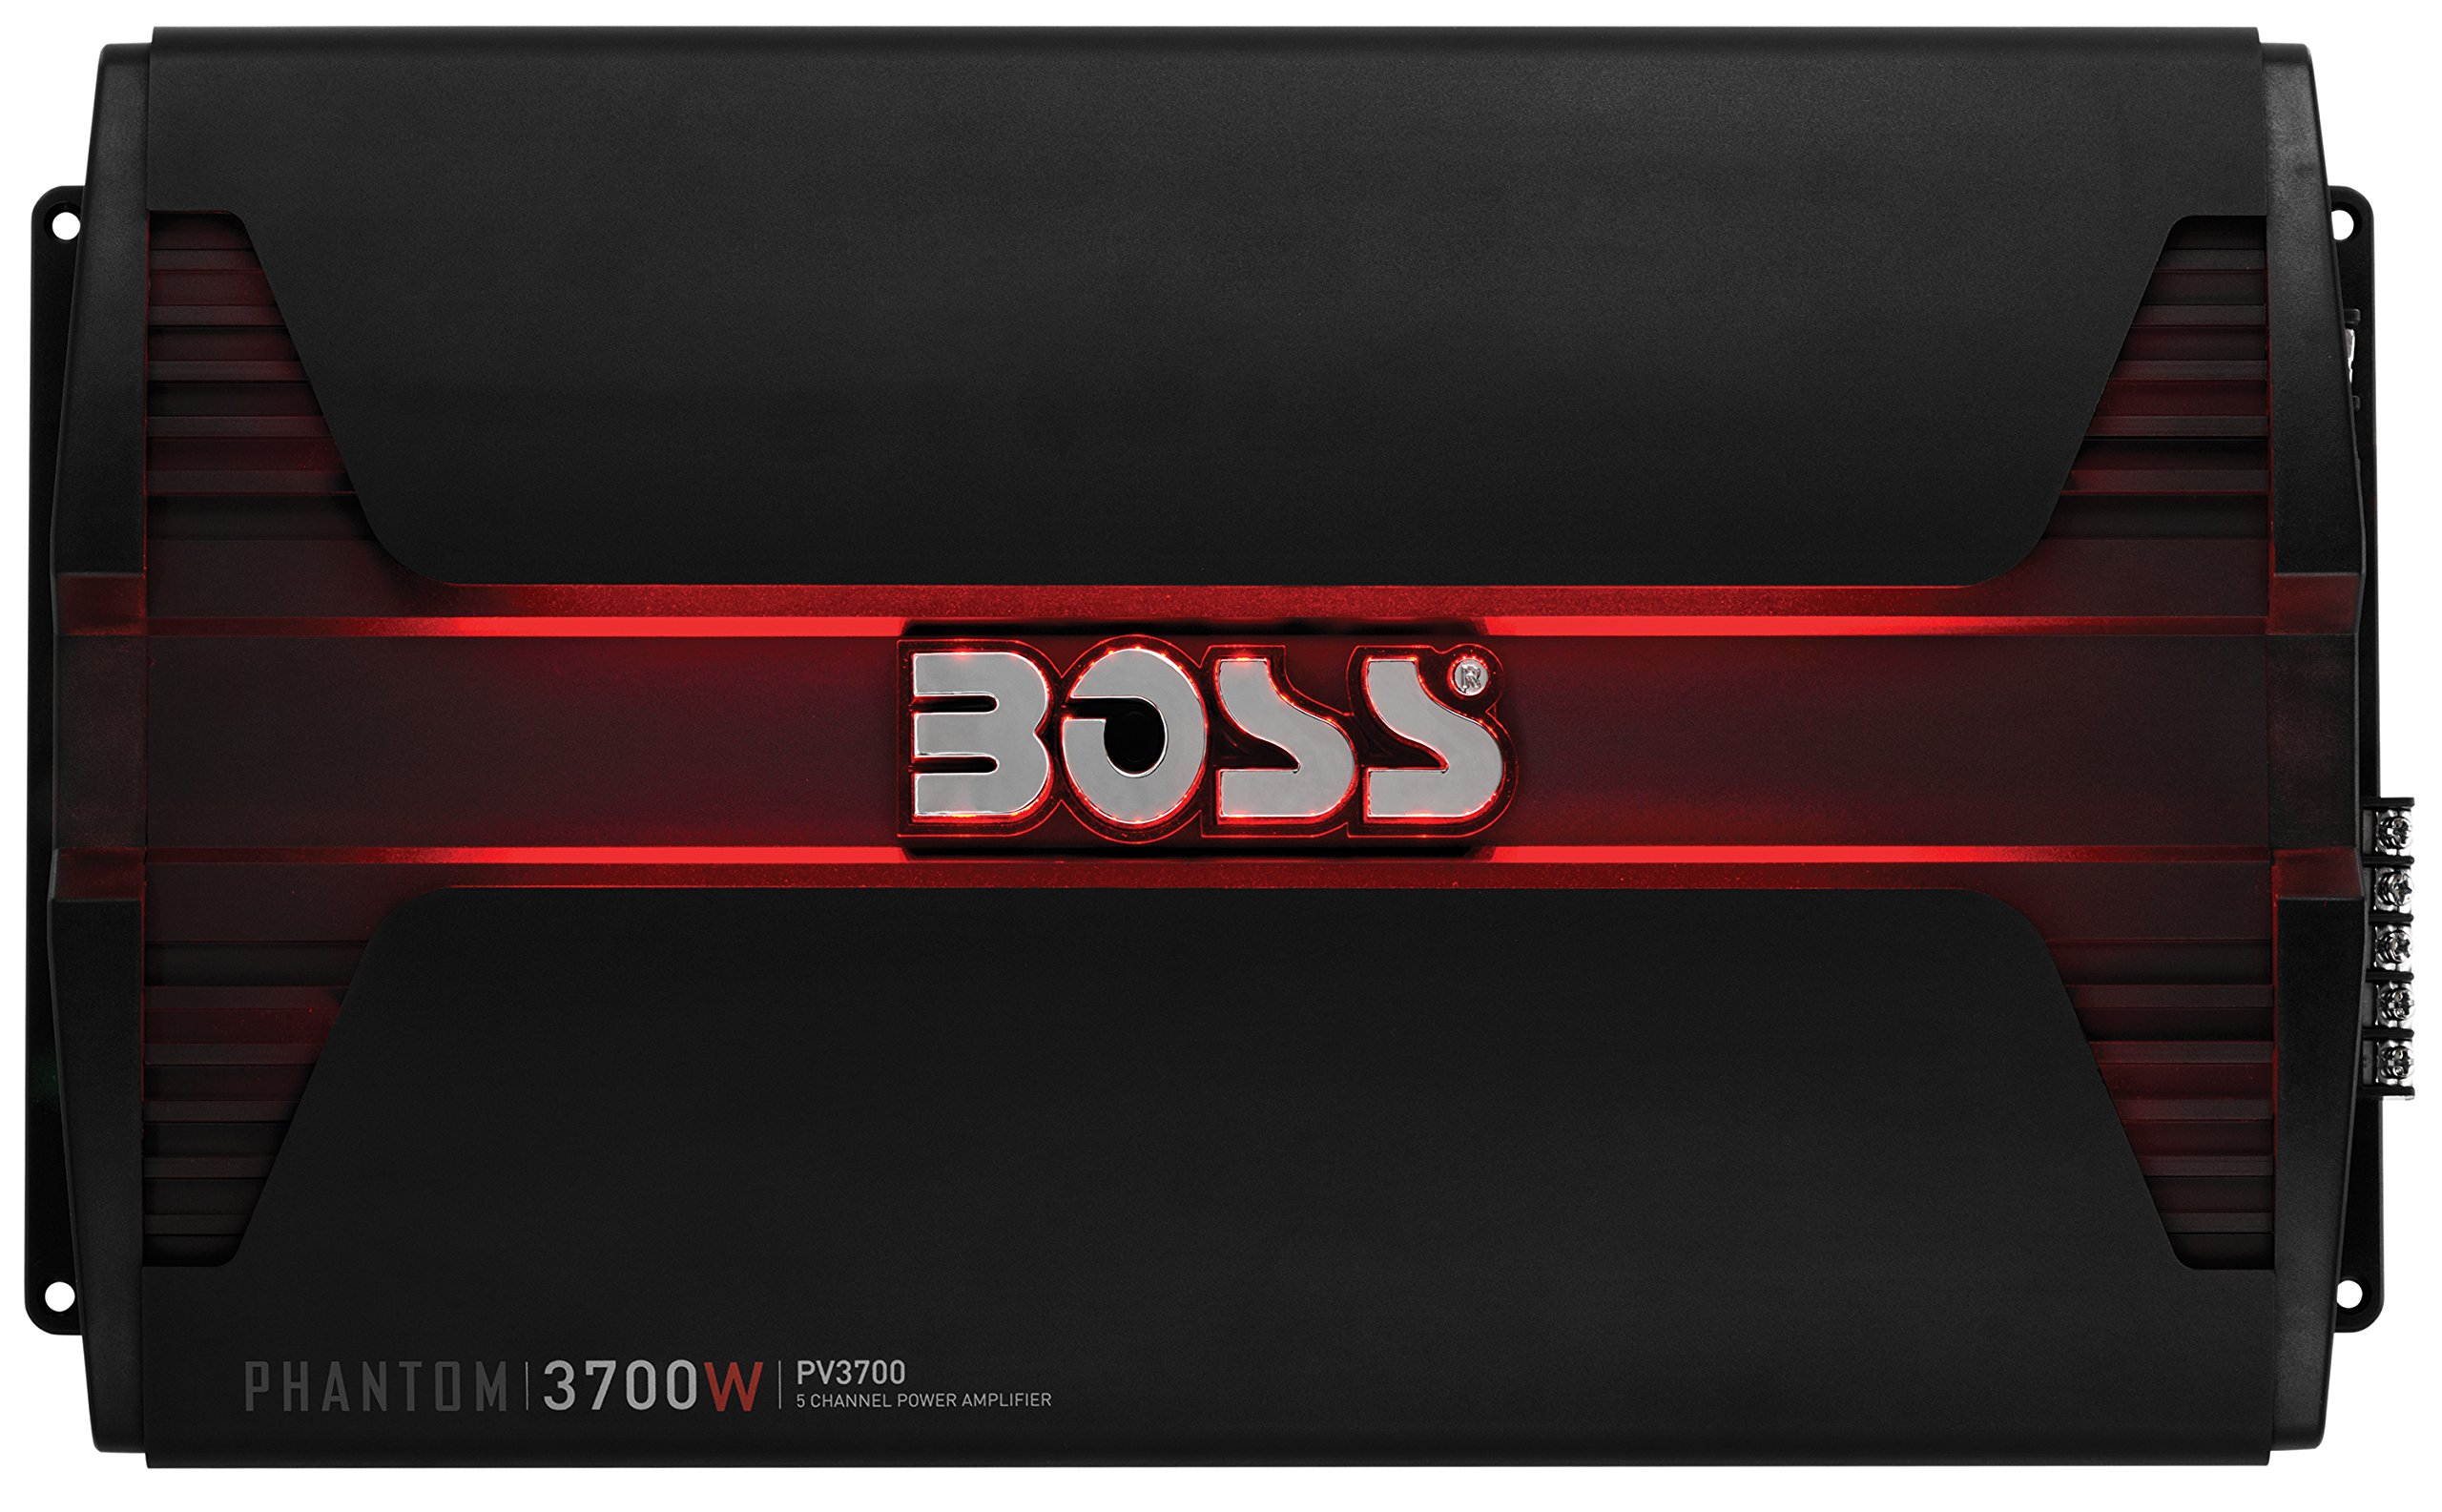 BOSS AUDIO PV3700 Phantom 3700 Watt, 5 Channel, 2/4 Ohm Stable Class A/B, Full Range, Bridgeable, MOSFET Car Amplifier with Remote Subwoofer Control